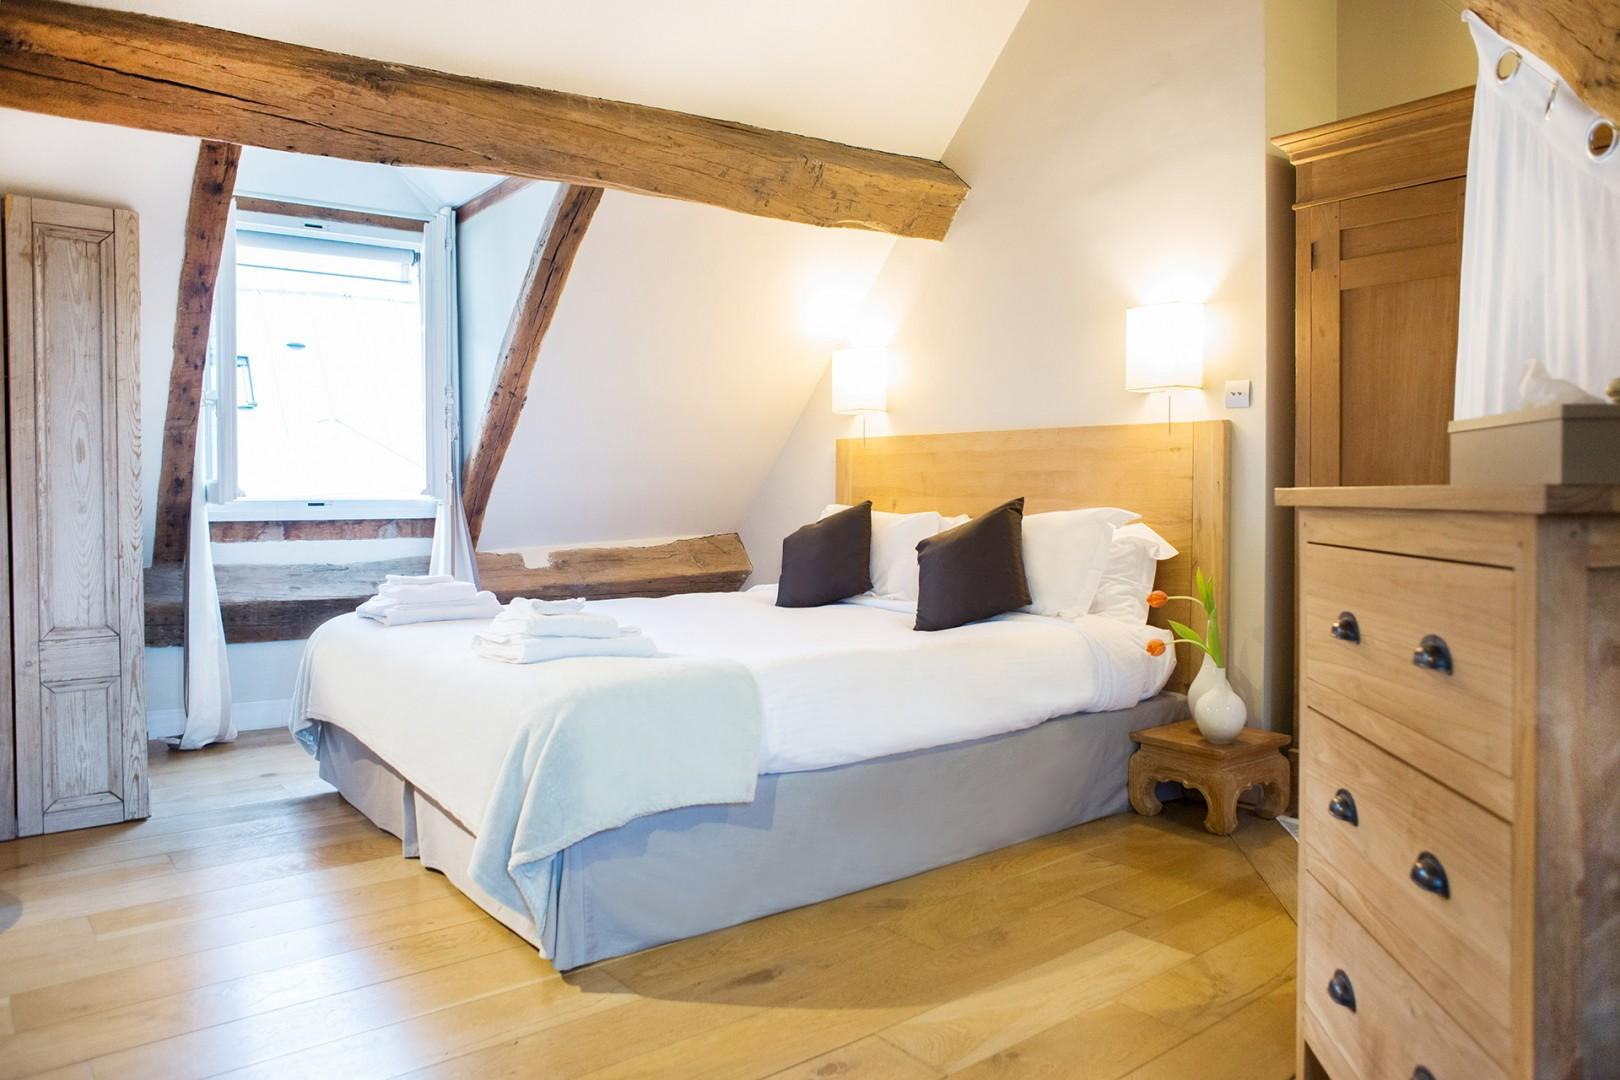 The spacious bedroom 1 has a comfortable bed and an en suite bathroom.